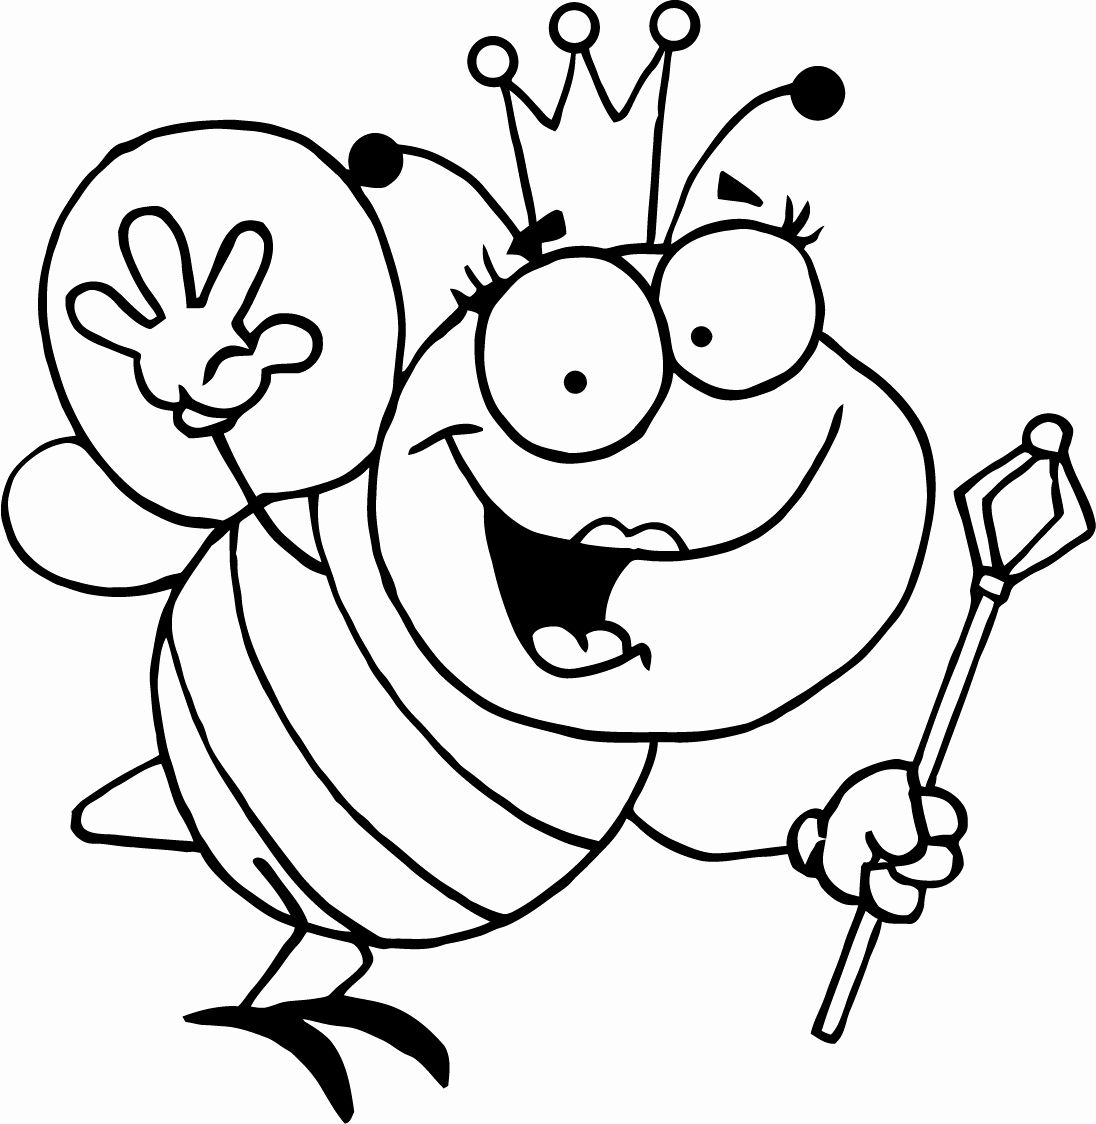 Honey Bee Coloring Page Fresh Free Printable Bumble Bee Coloring Pages For Kids In 2020 Bee Coloring Pages Animal Coloring Pages Bee Scrapbook